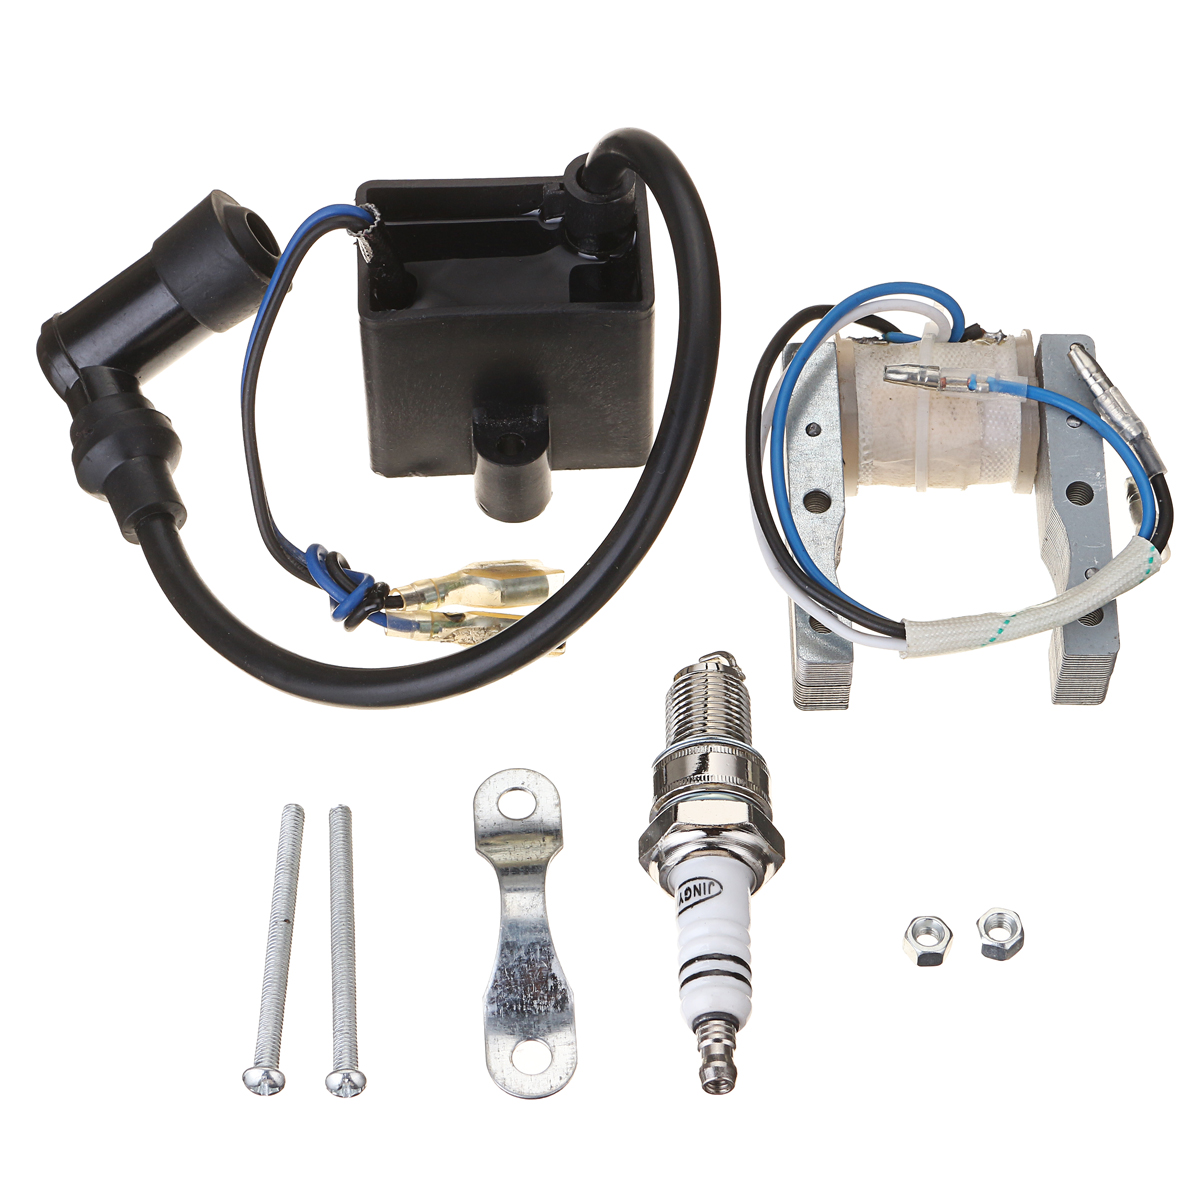 Motorcycle CDI Ignition Coil Magneto For Motorized 49cc 66cc 80cc Engine Bicycle Spark Plug Dayton ads sell